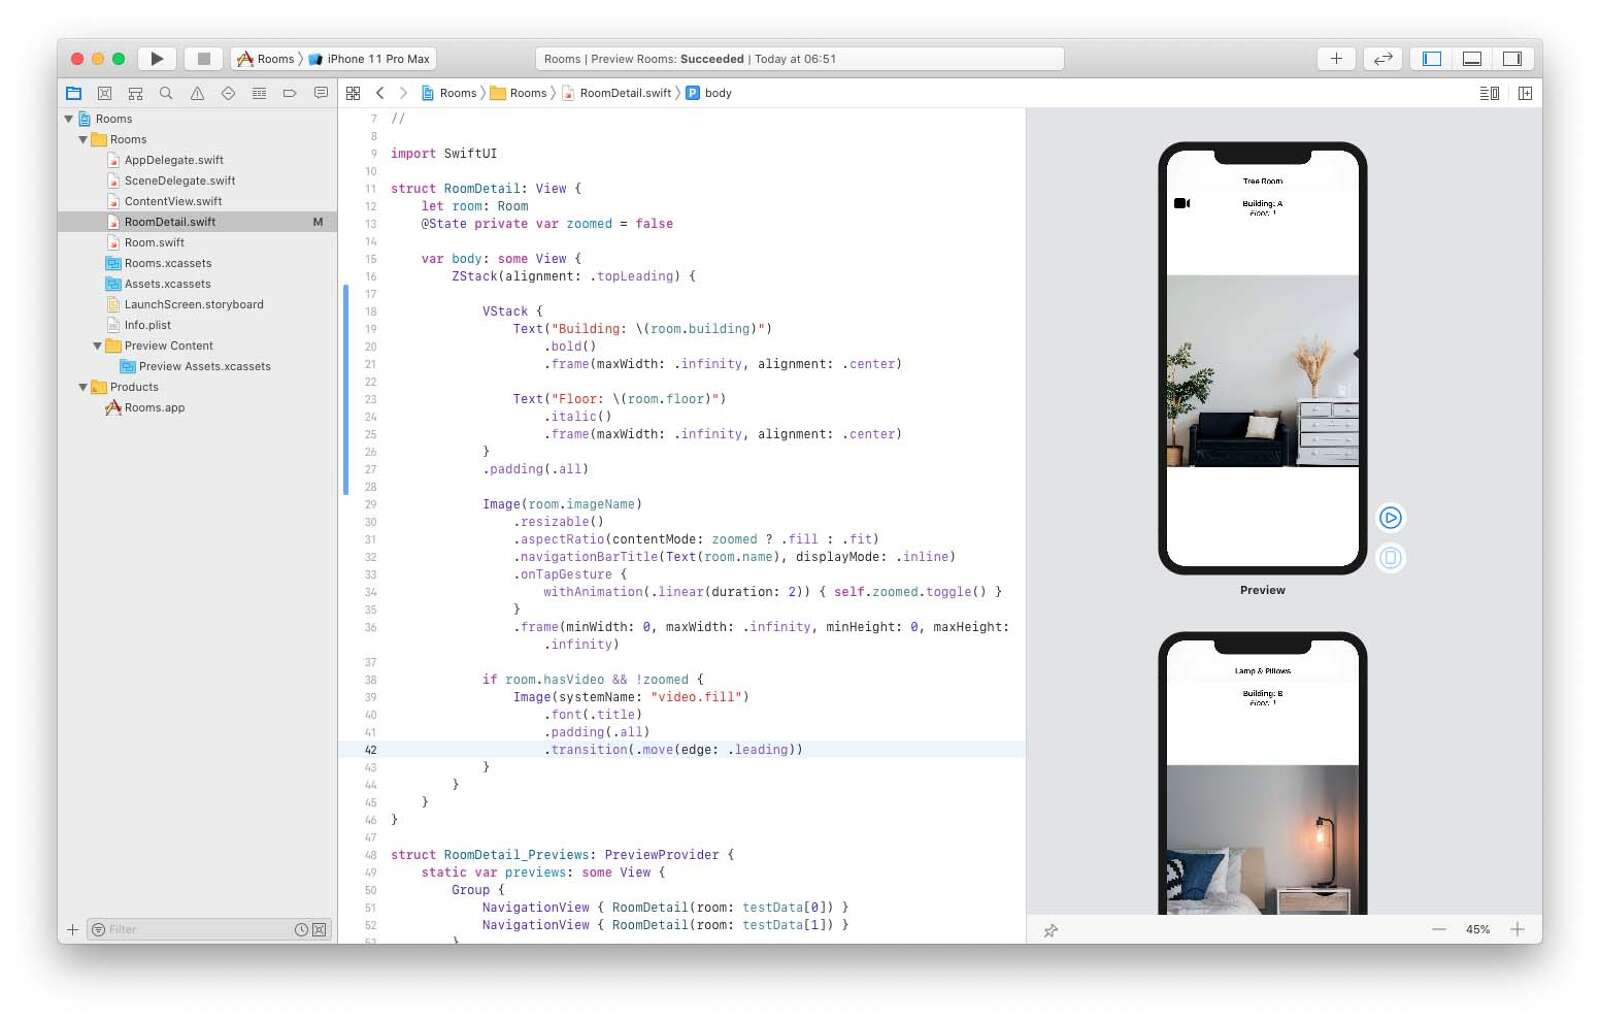 https://res.cloudinary.com/codewithjan/image/upload/v1578455032/swiftui-by-examples/swiftui-by-examples-49.jpg